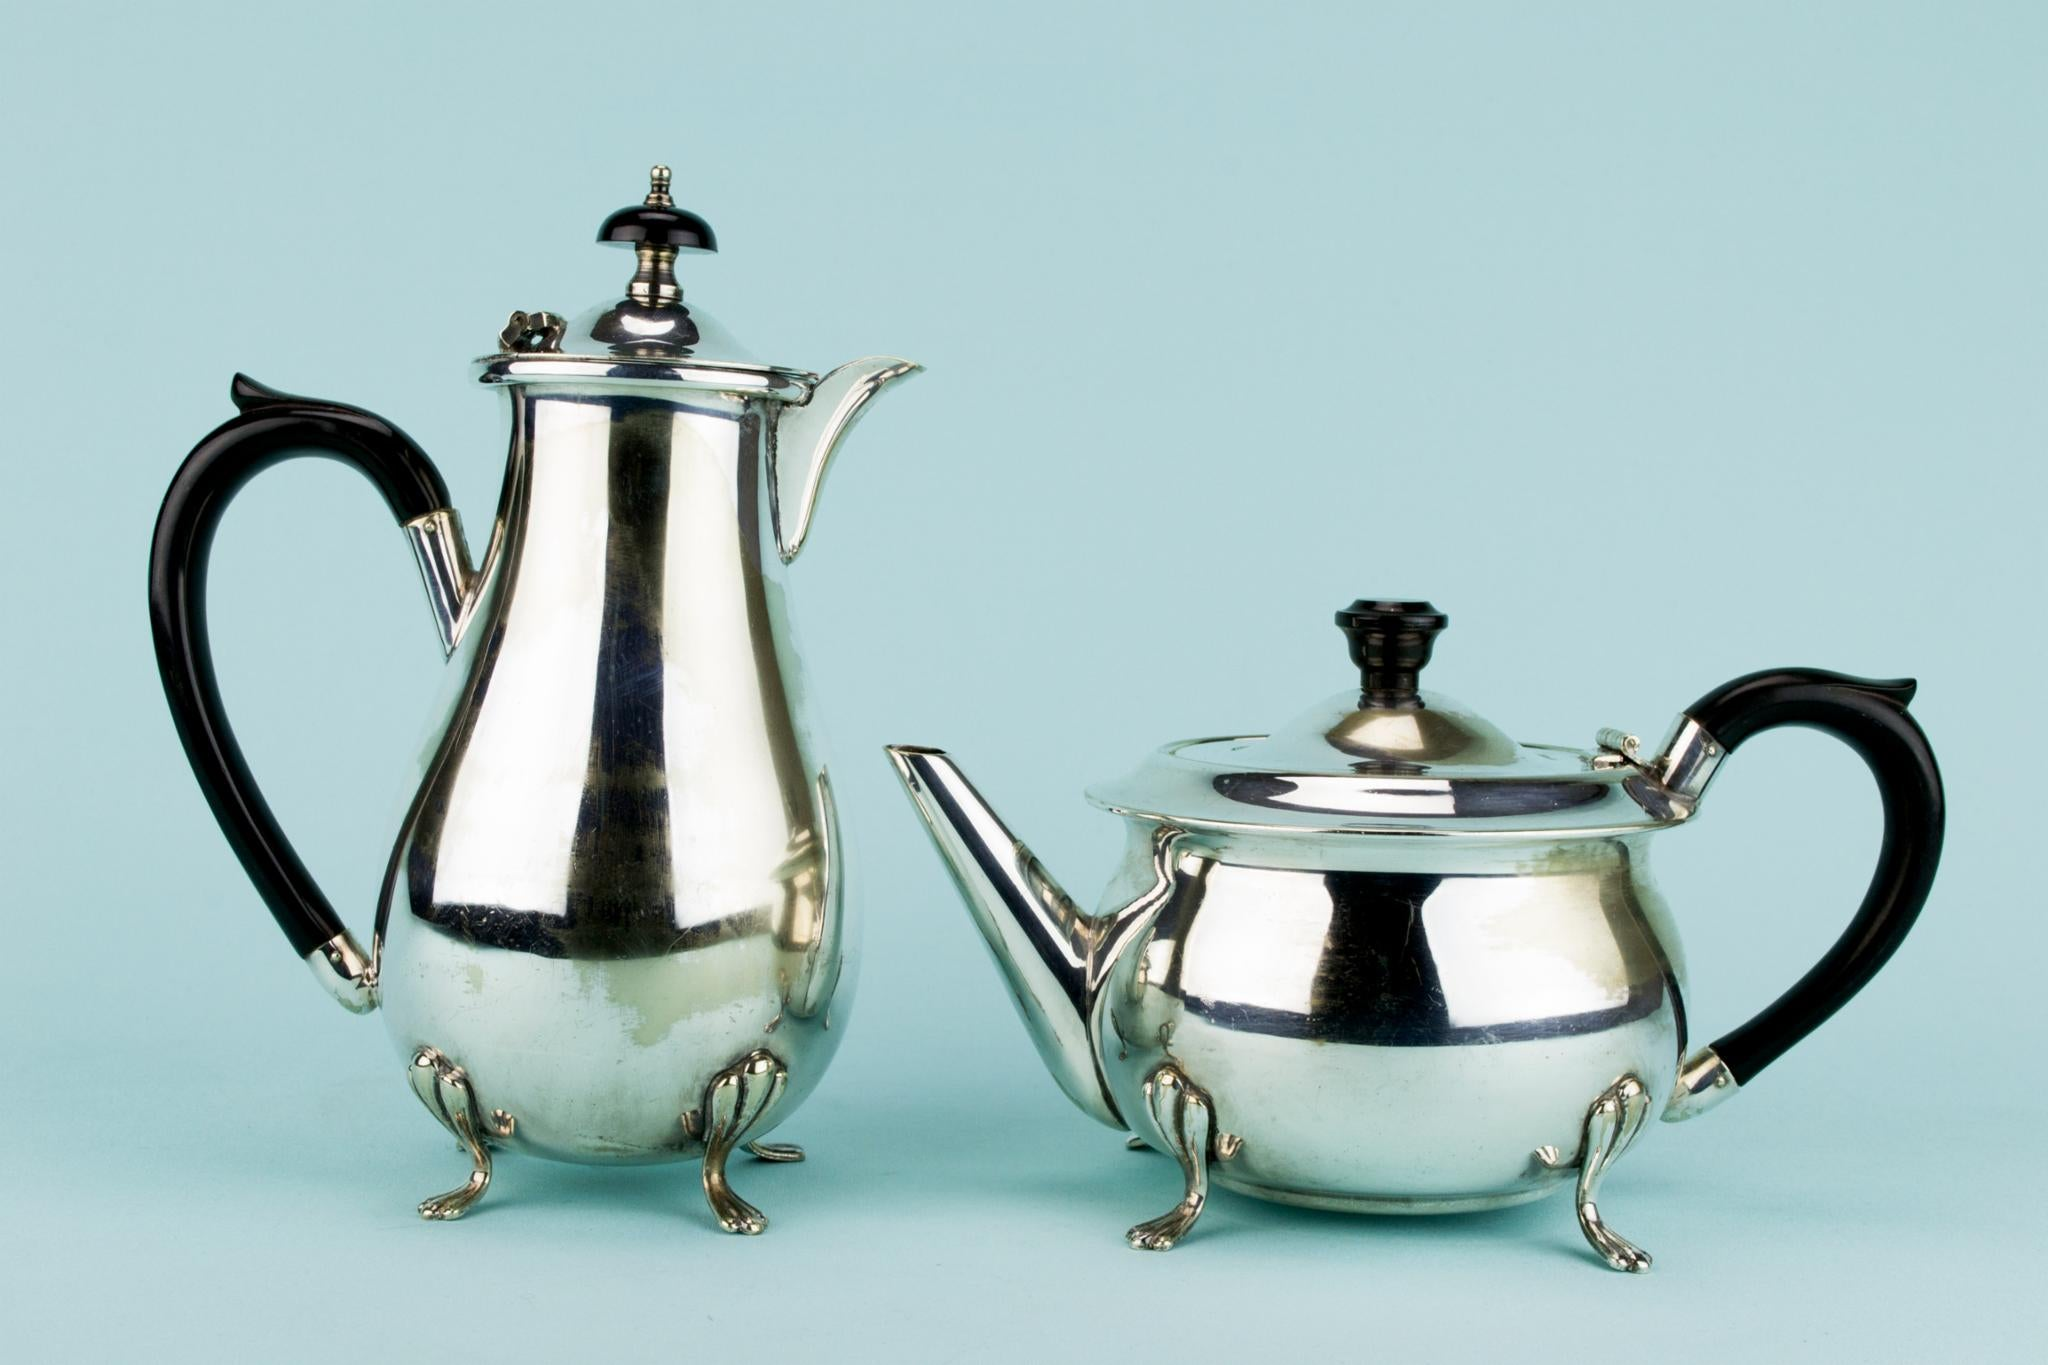 ... Silver Plated Tea and Coffee Set English Circa 1930 ... & Silver Plated Tea and Coffee Set English Circa 1930 | Lavish Shoestring